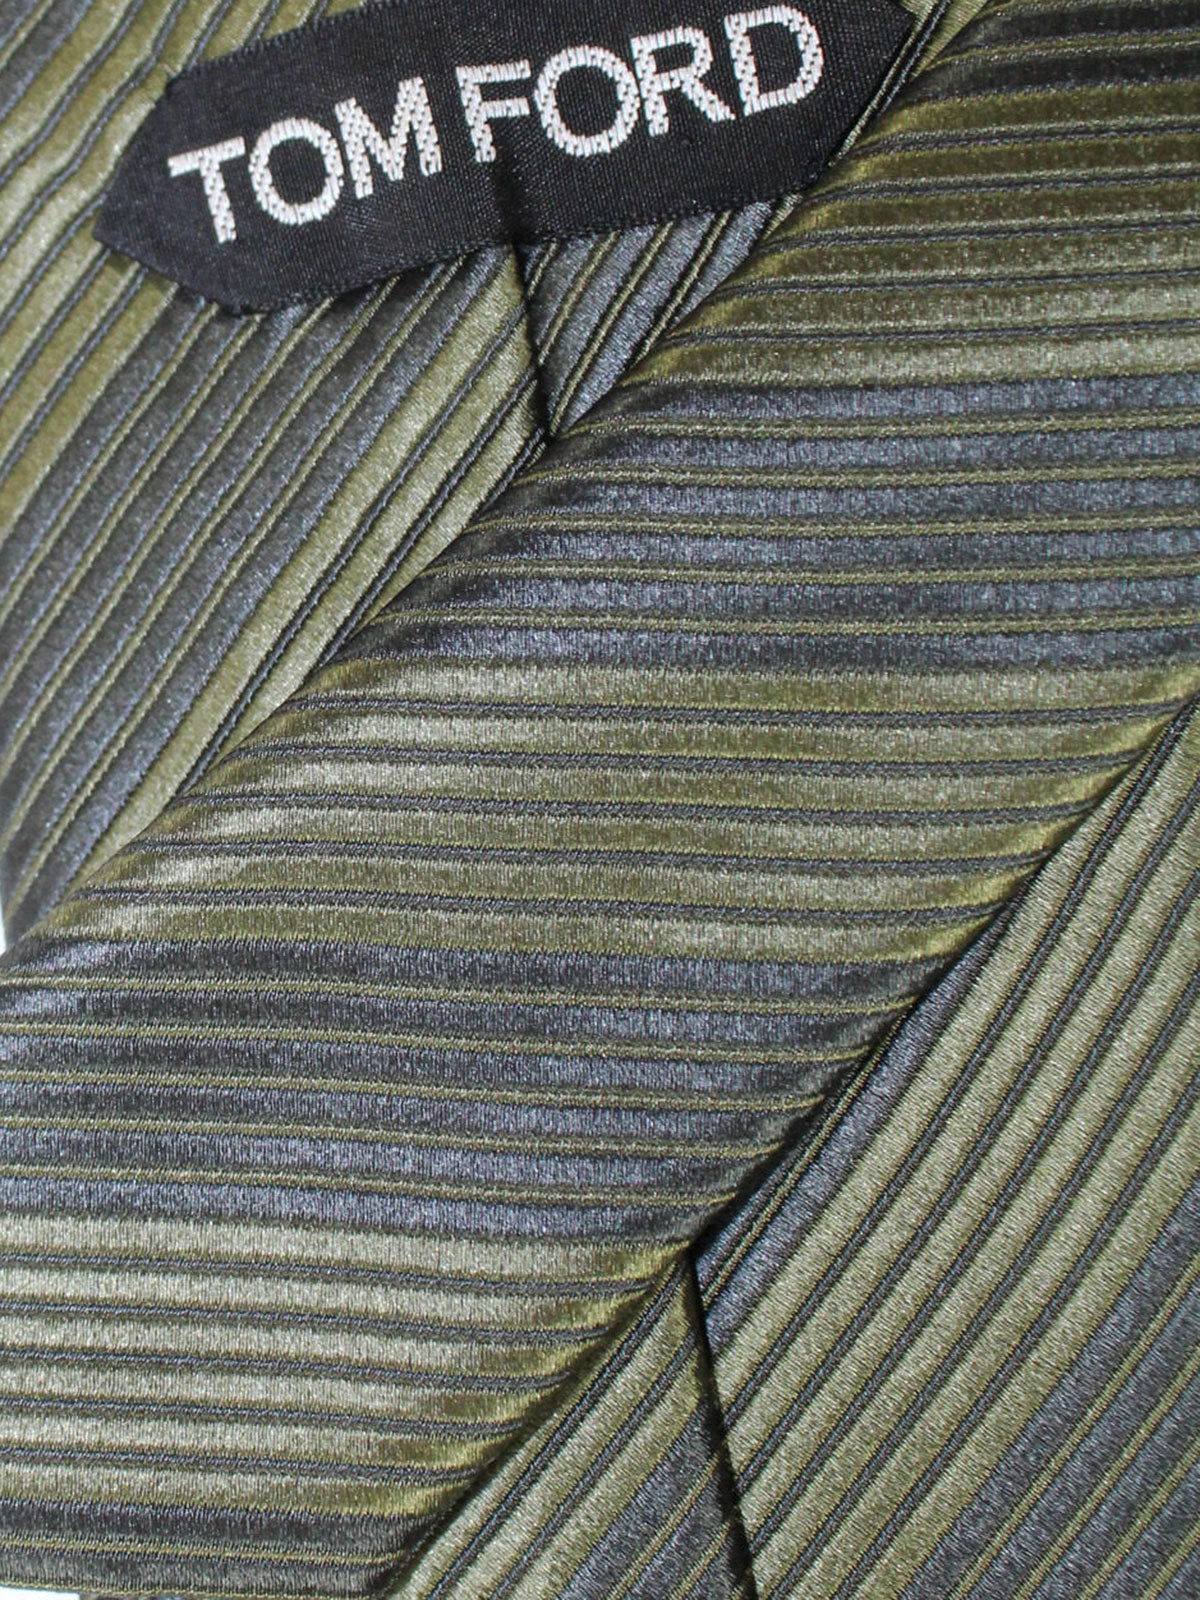 Tom Ford Silk Tie Green Stripes